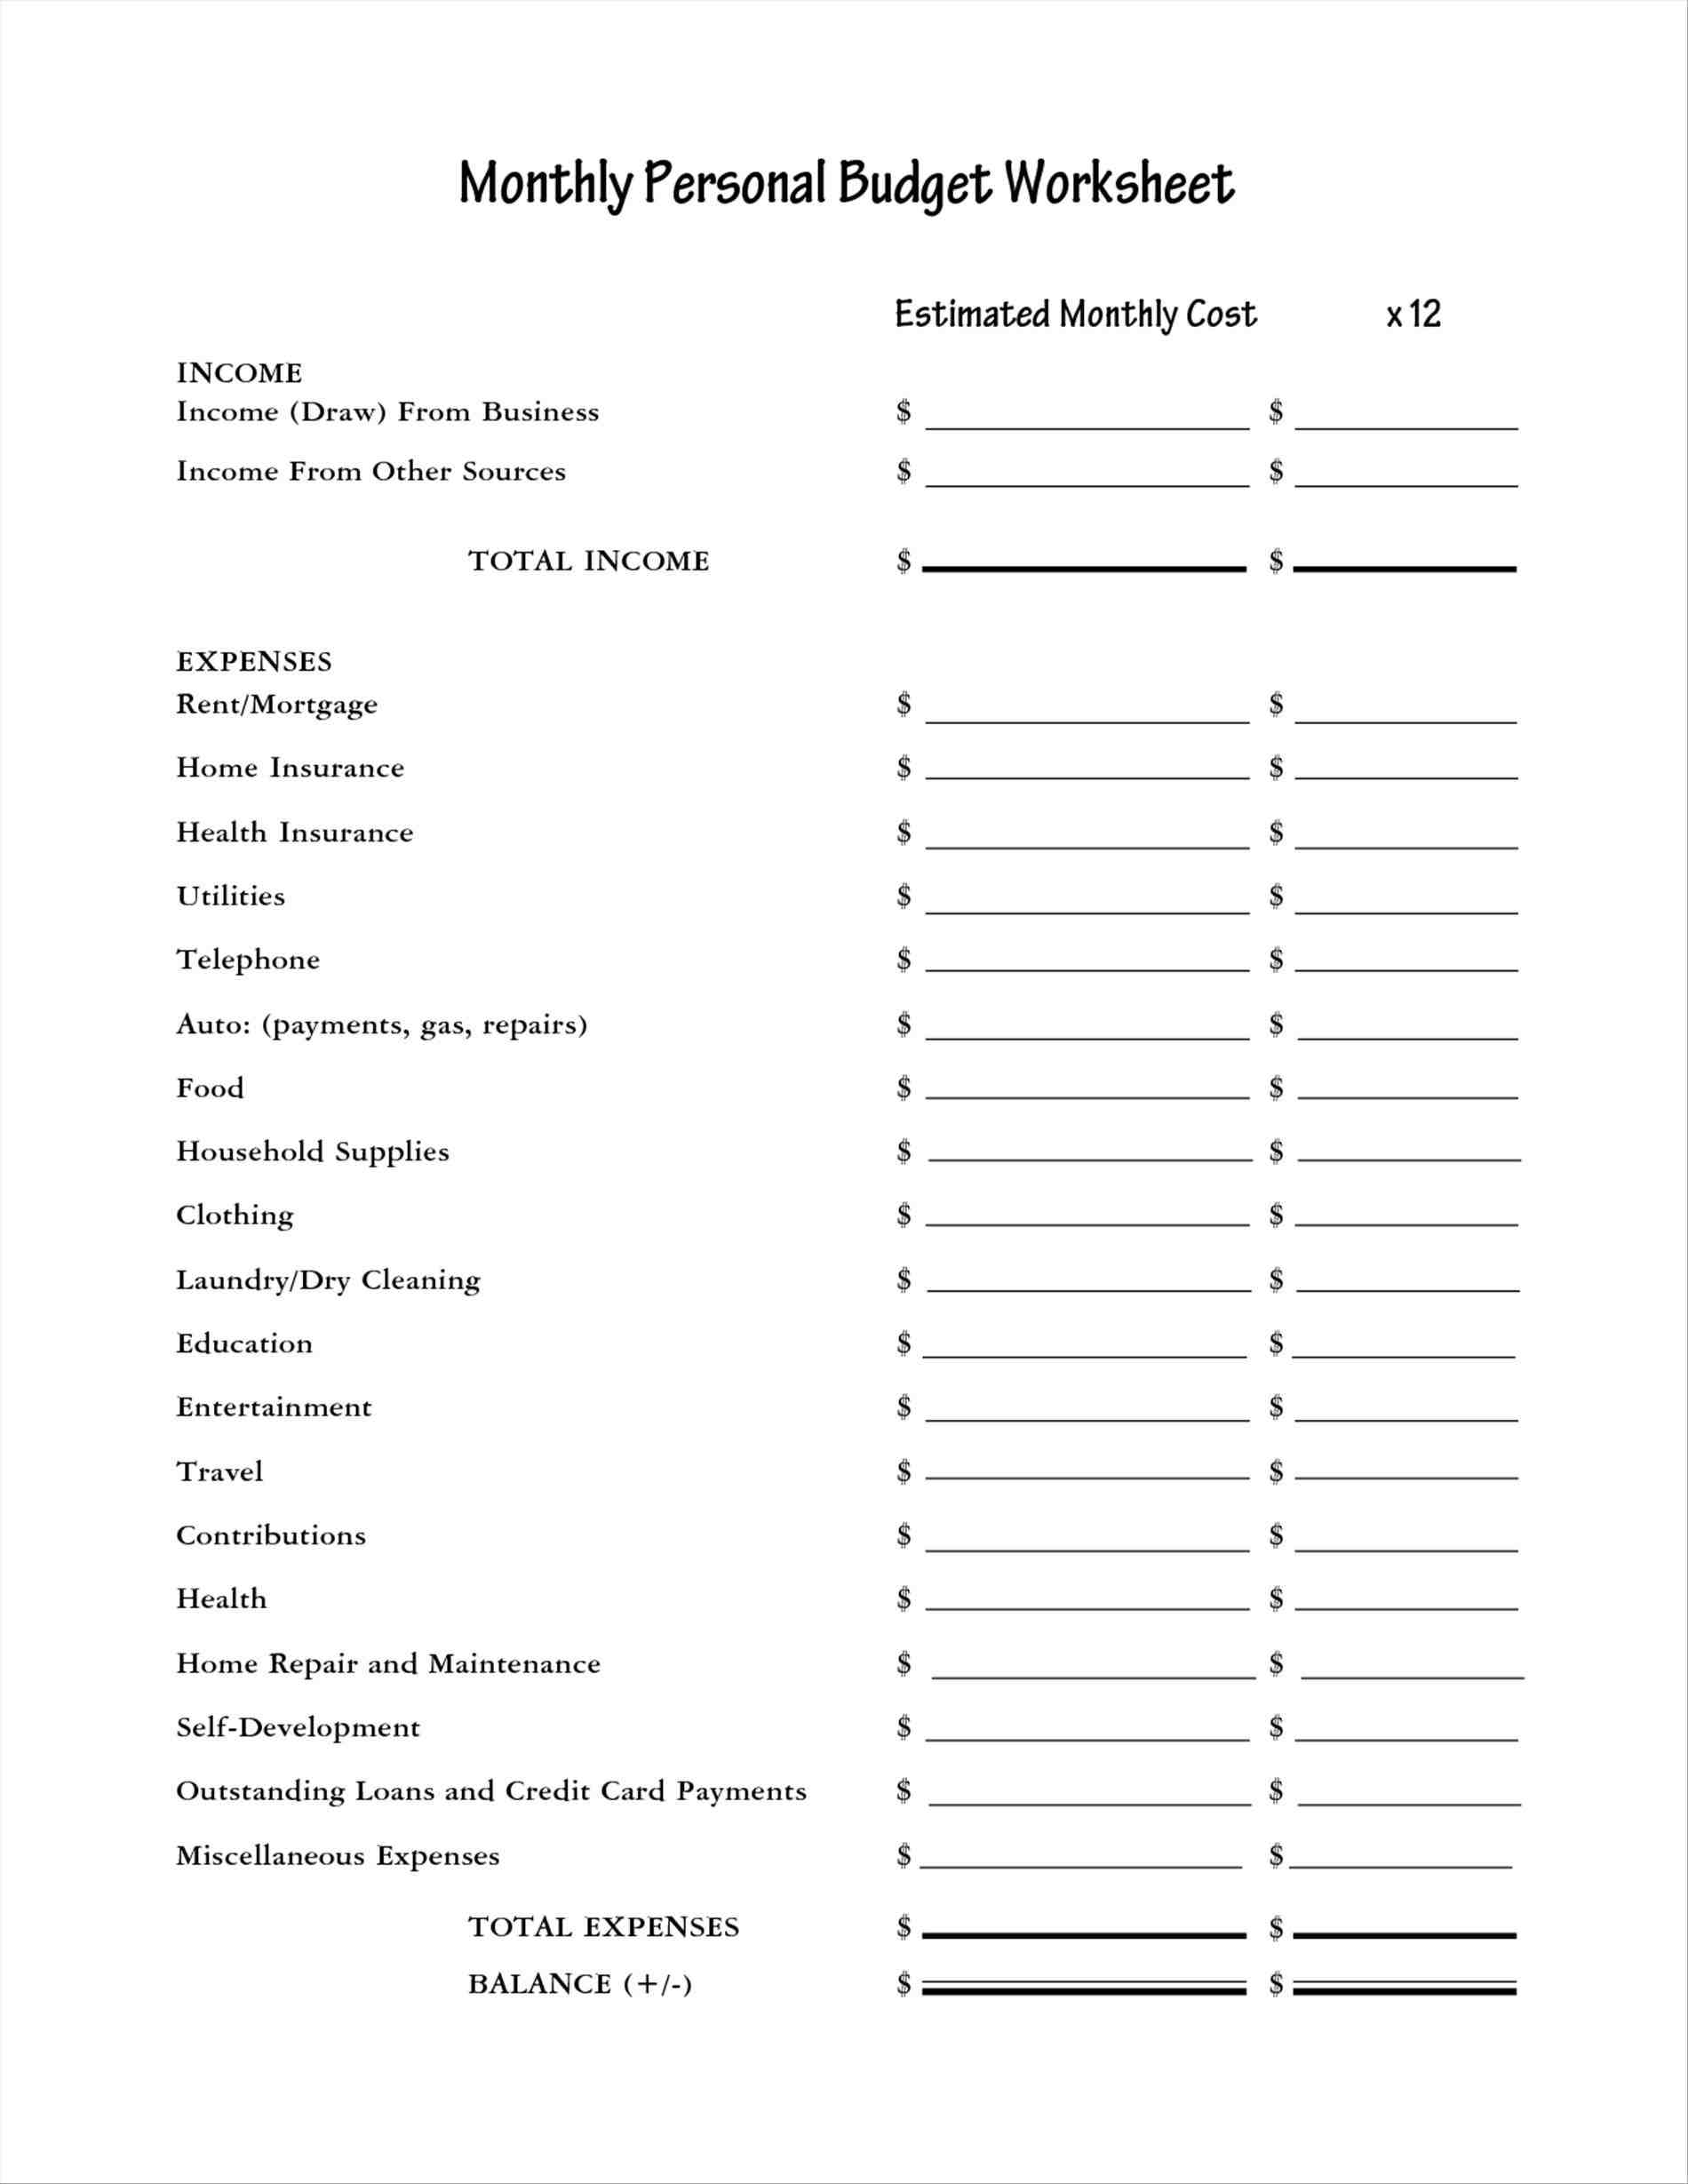 Family Monthly Expense Calculator Worksheet monthly expense sheet elegant bud and budget planning commonpenceco budget Family Monthly Expense Calculator Worksheet